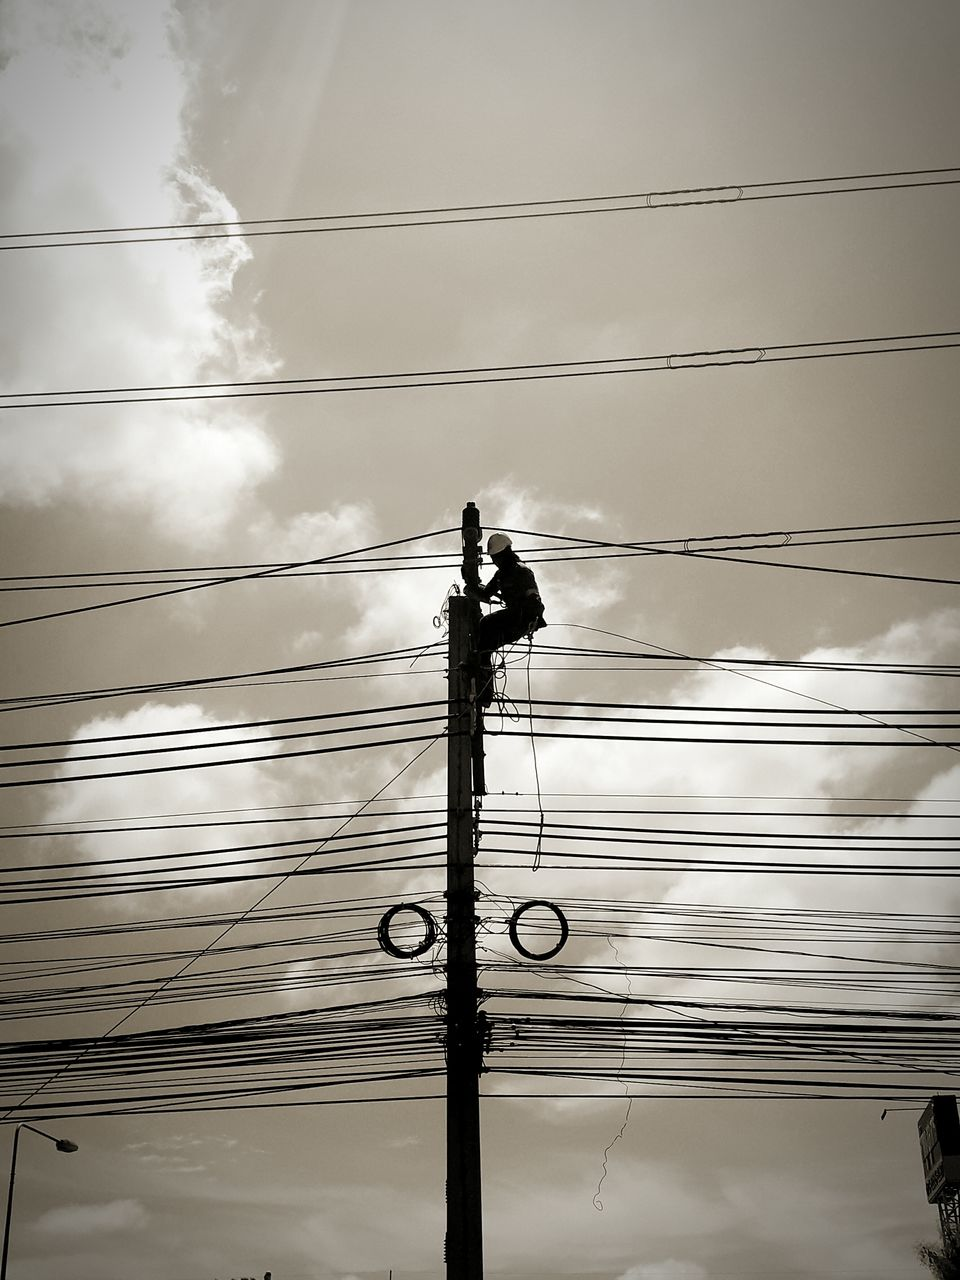 cable, electricity, power line, power supply, fuel and power generation, connection, technology, low angle view, sky, cloud - sky, electricity pylon, nature, no people, complexity, outdoors, silhouette, power, day, lighting equipment, power cable, light, electrical equipment, telephone line